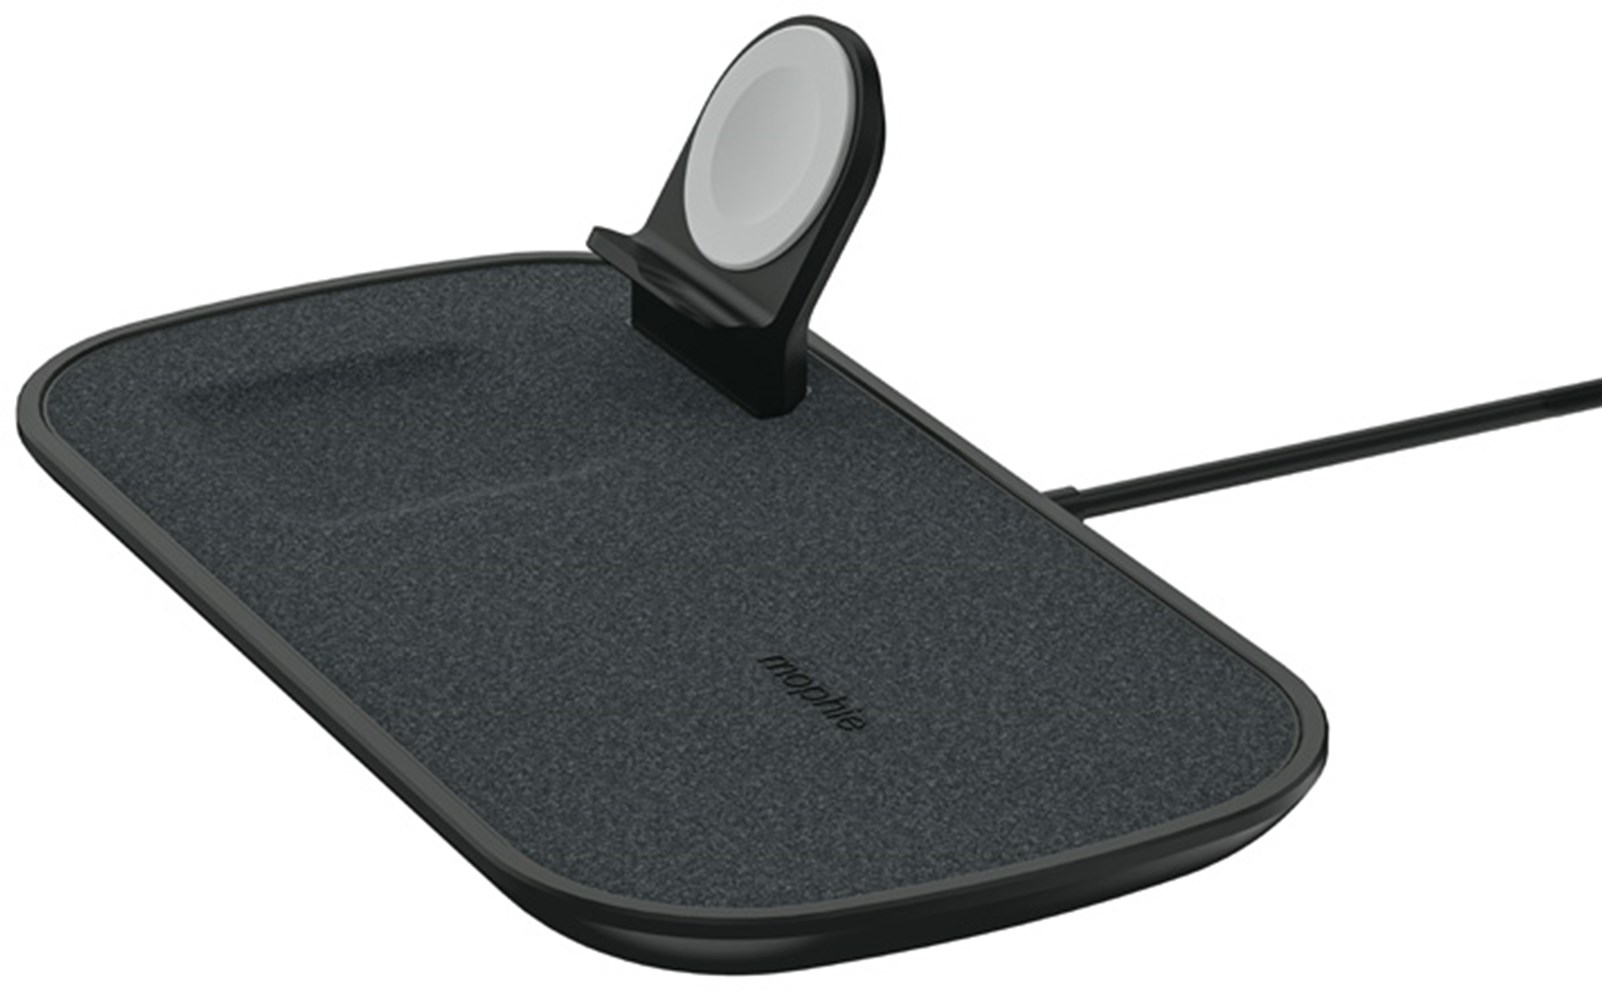 Mophie Wireless Charging Pad 3-In-1 Black